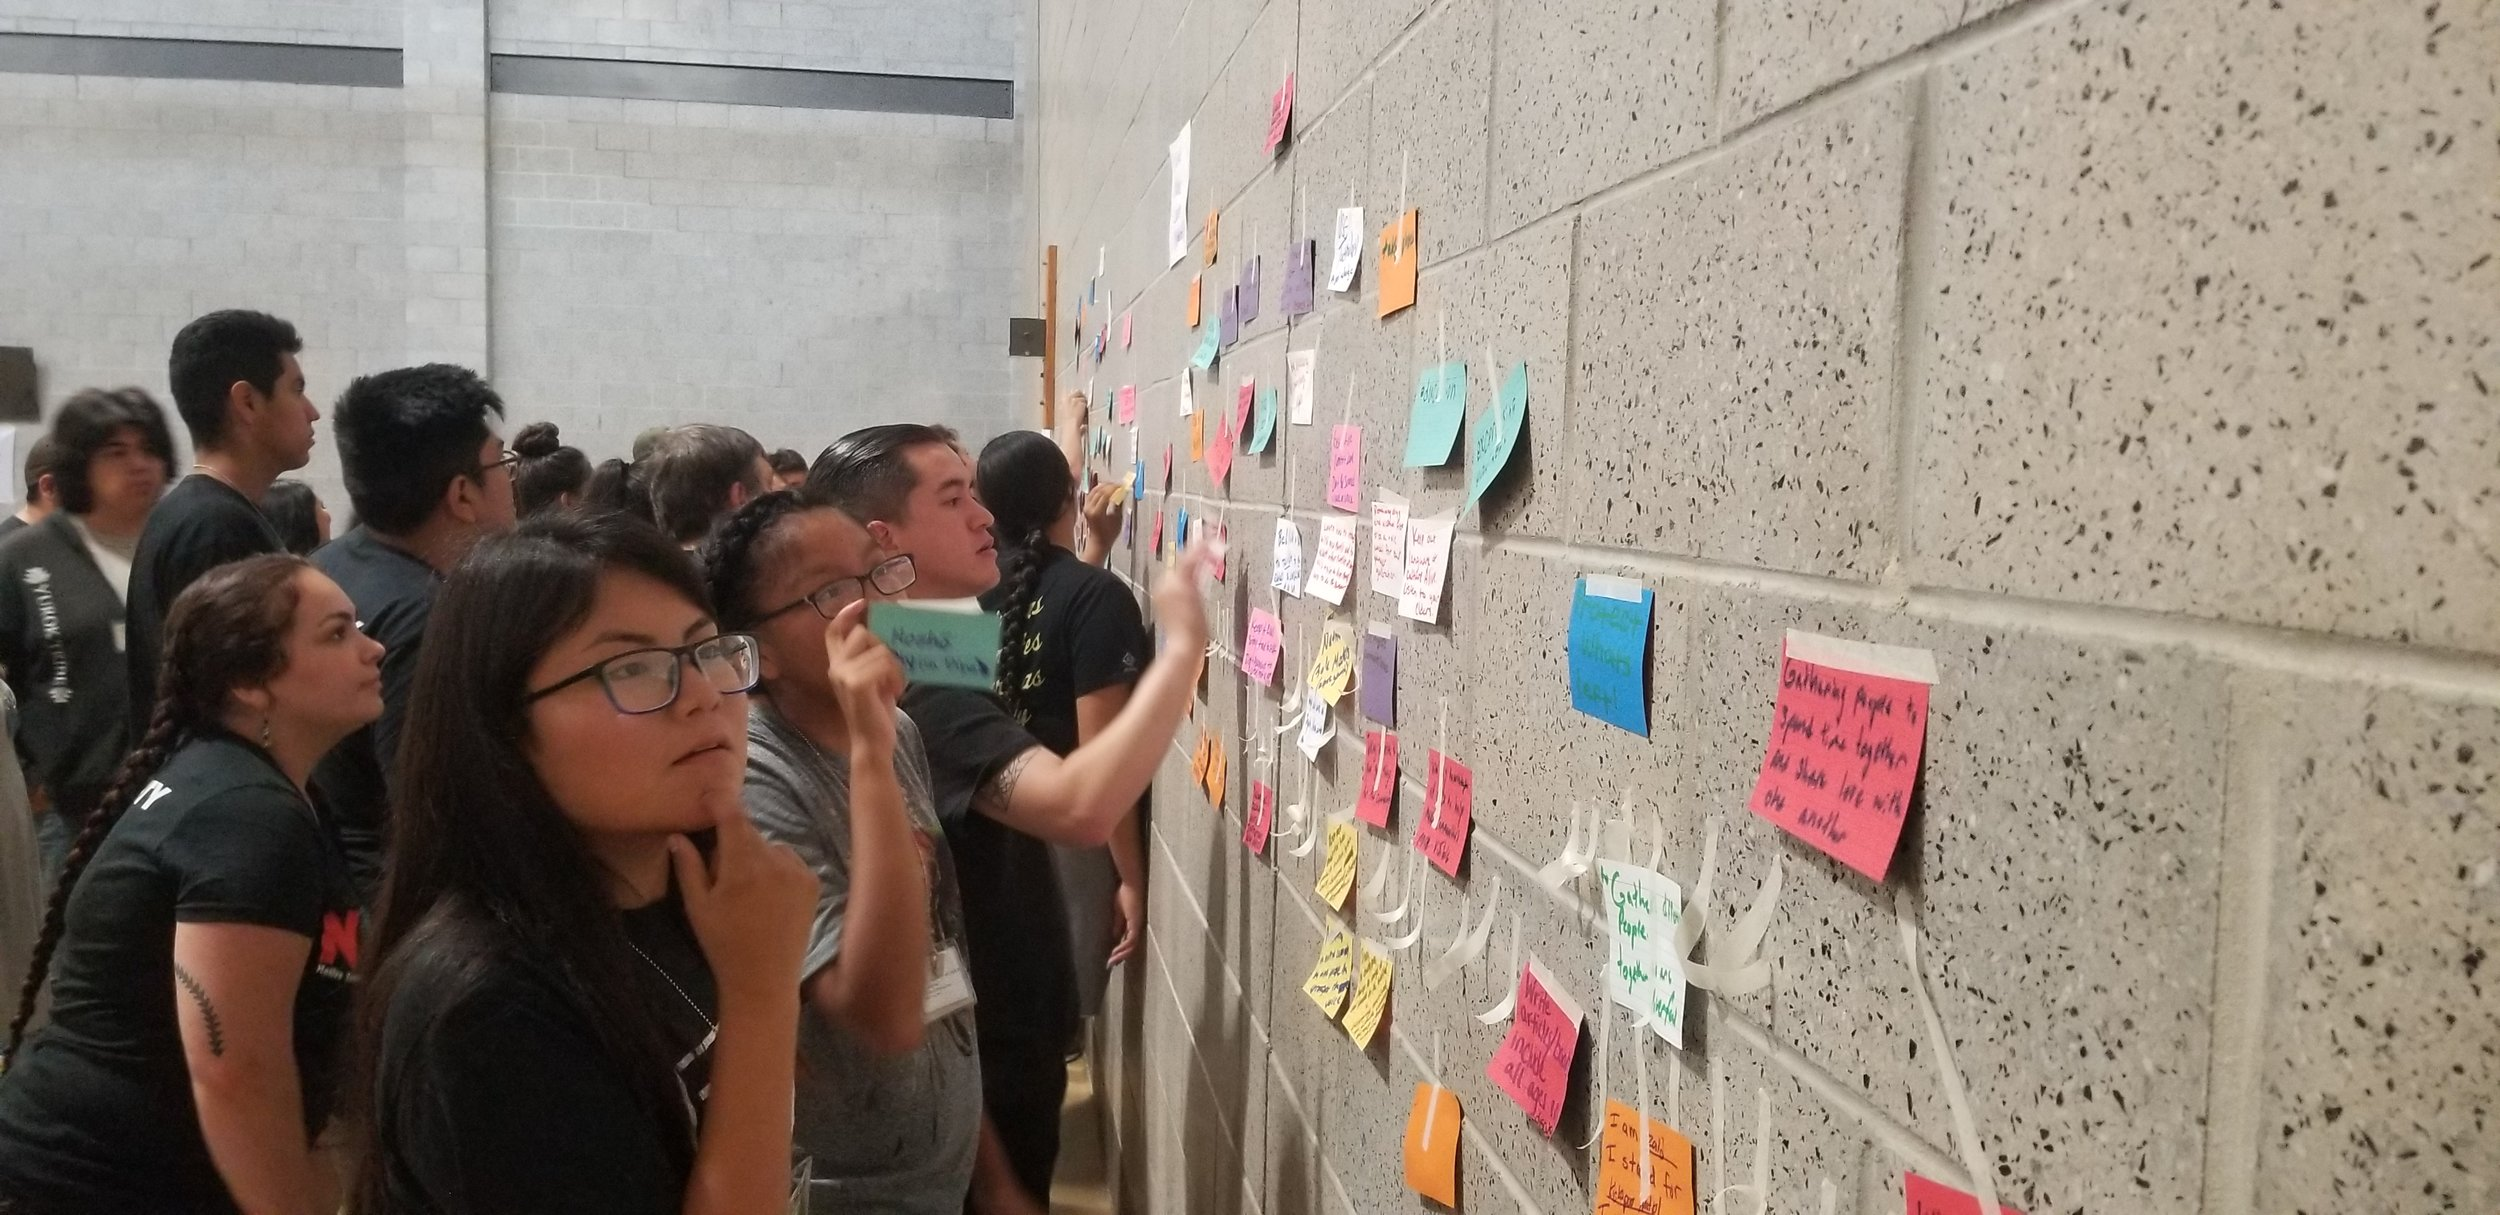 Student participants add their responses to the big question to a wall to get a comprehensive understanding. Photo by USFWS.